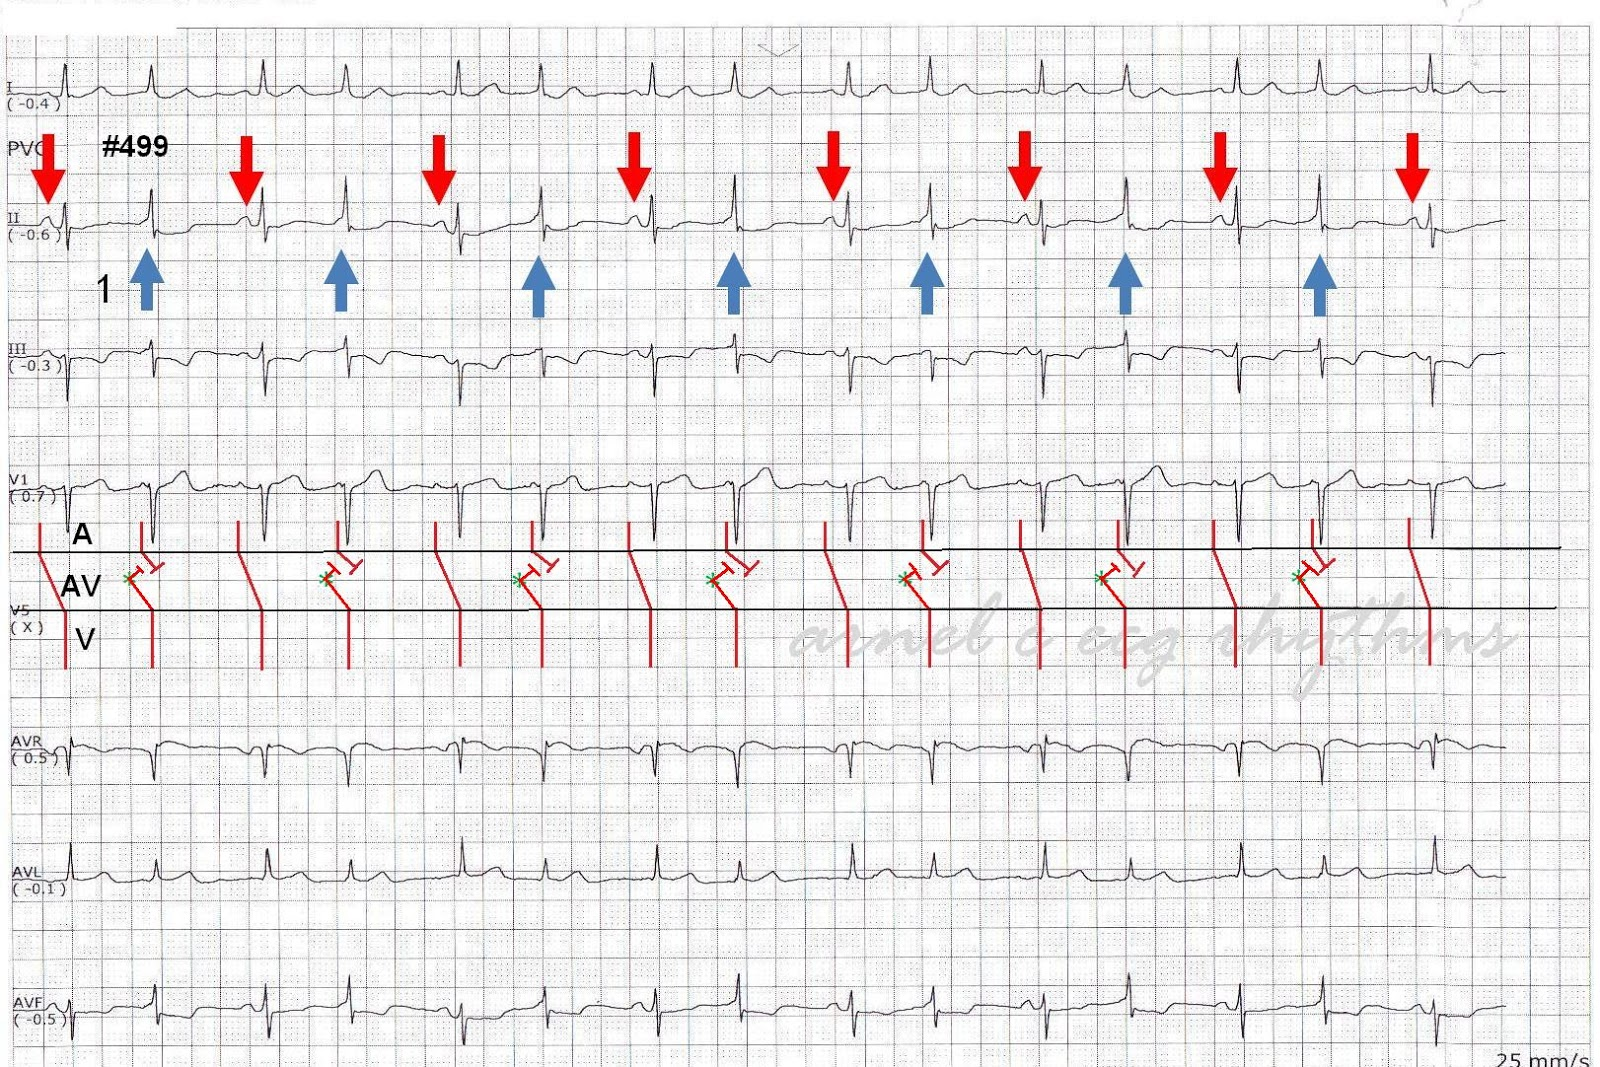 ecg rhythms  intermittent preexcitation  qrs alternans or